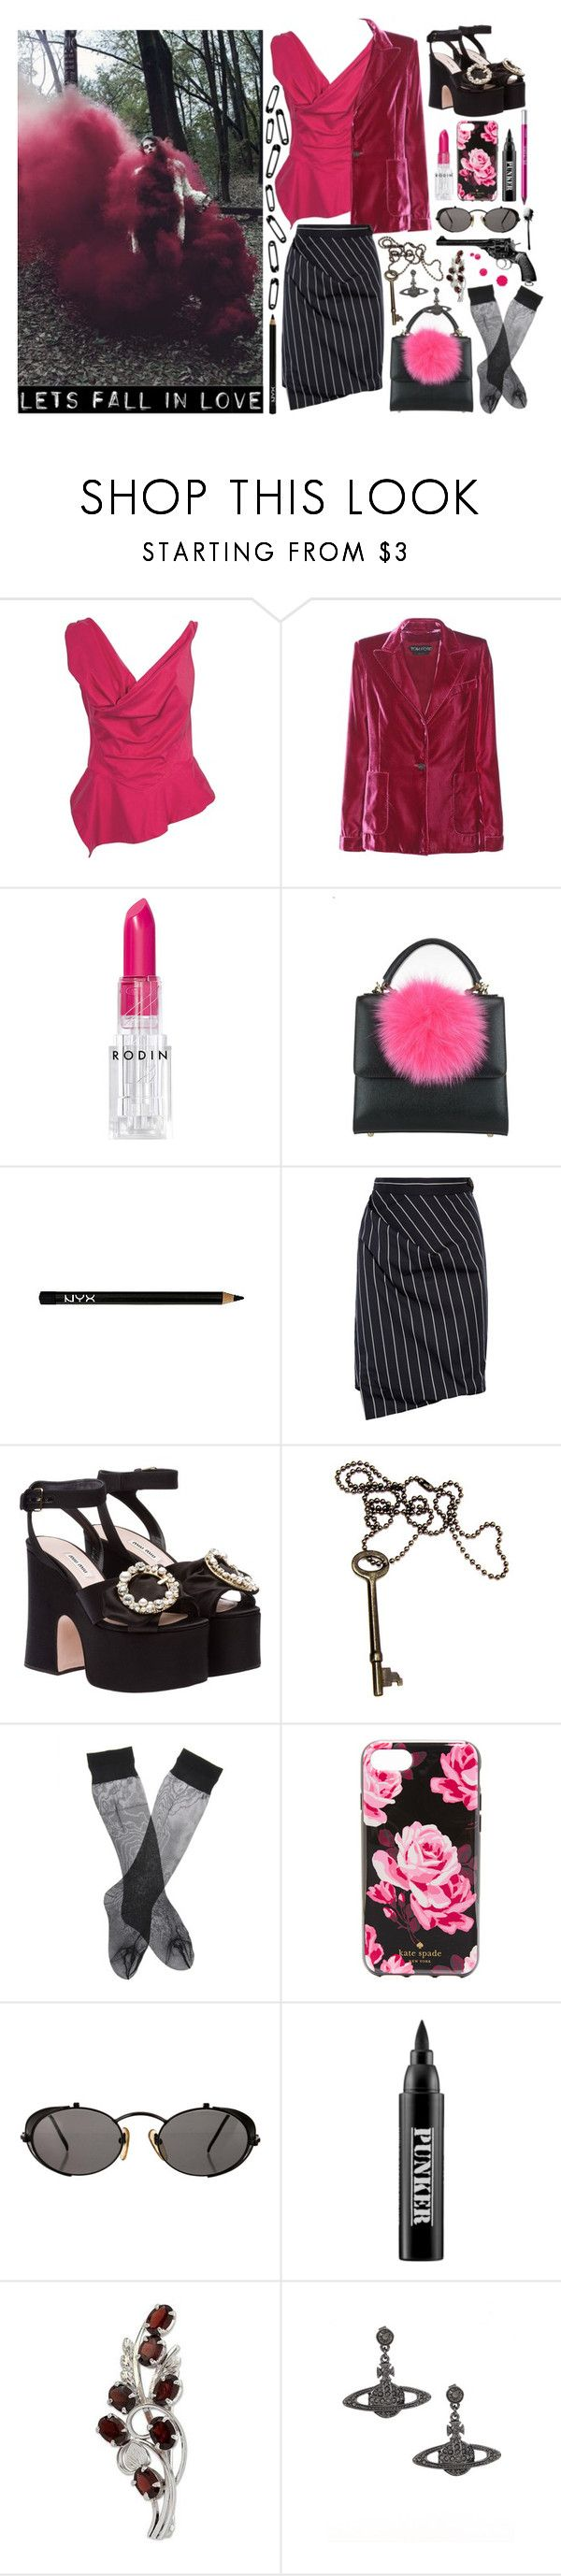 """""""I gotta kill you, my love"""" by nothingisnormal ❤ liked on Polyvore featuring Vivienne Westwood, Tom Ford, Brandy Melville, Rodin, Les Petits Joueurs, NYX, Vivienne Westwood Anglomania, Miu Miu, Kate Spade and Jean-Paul Gaultier"""